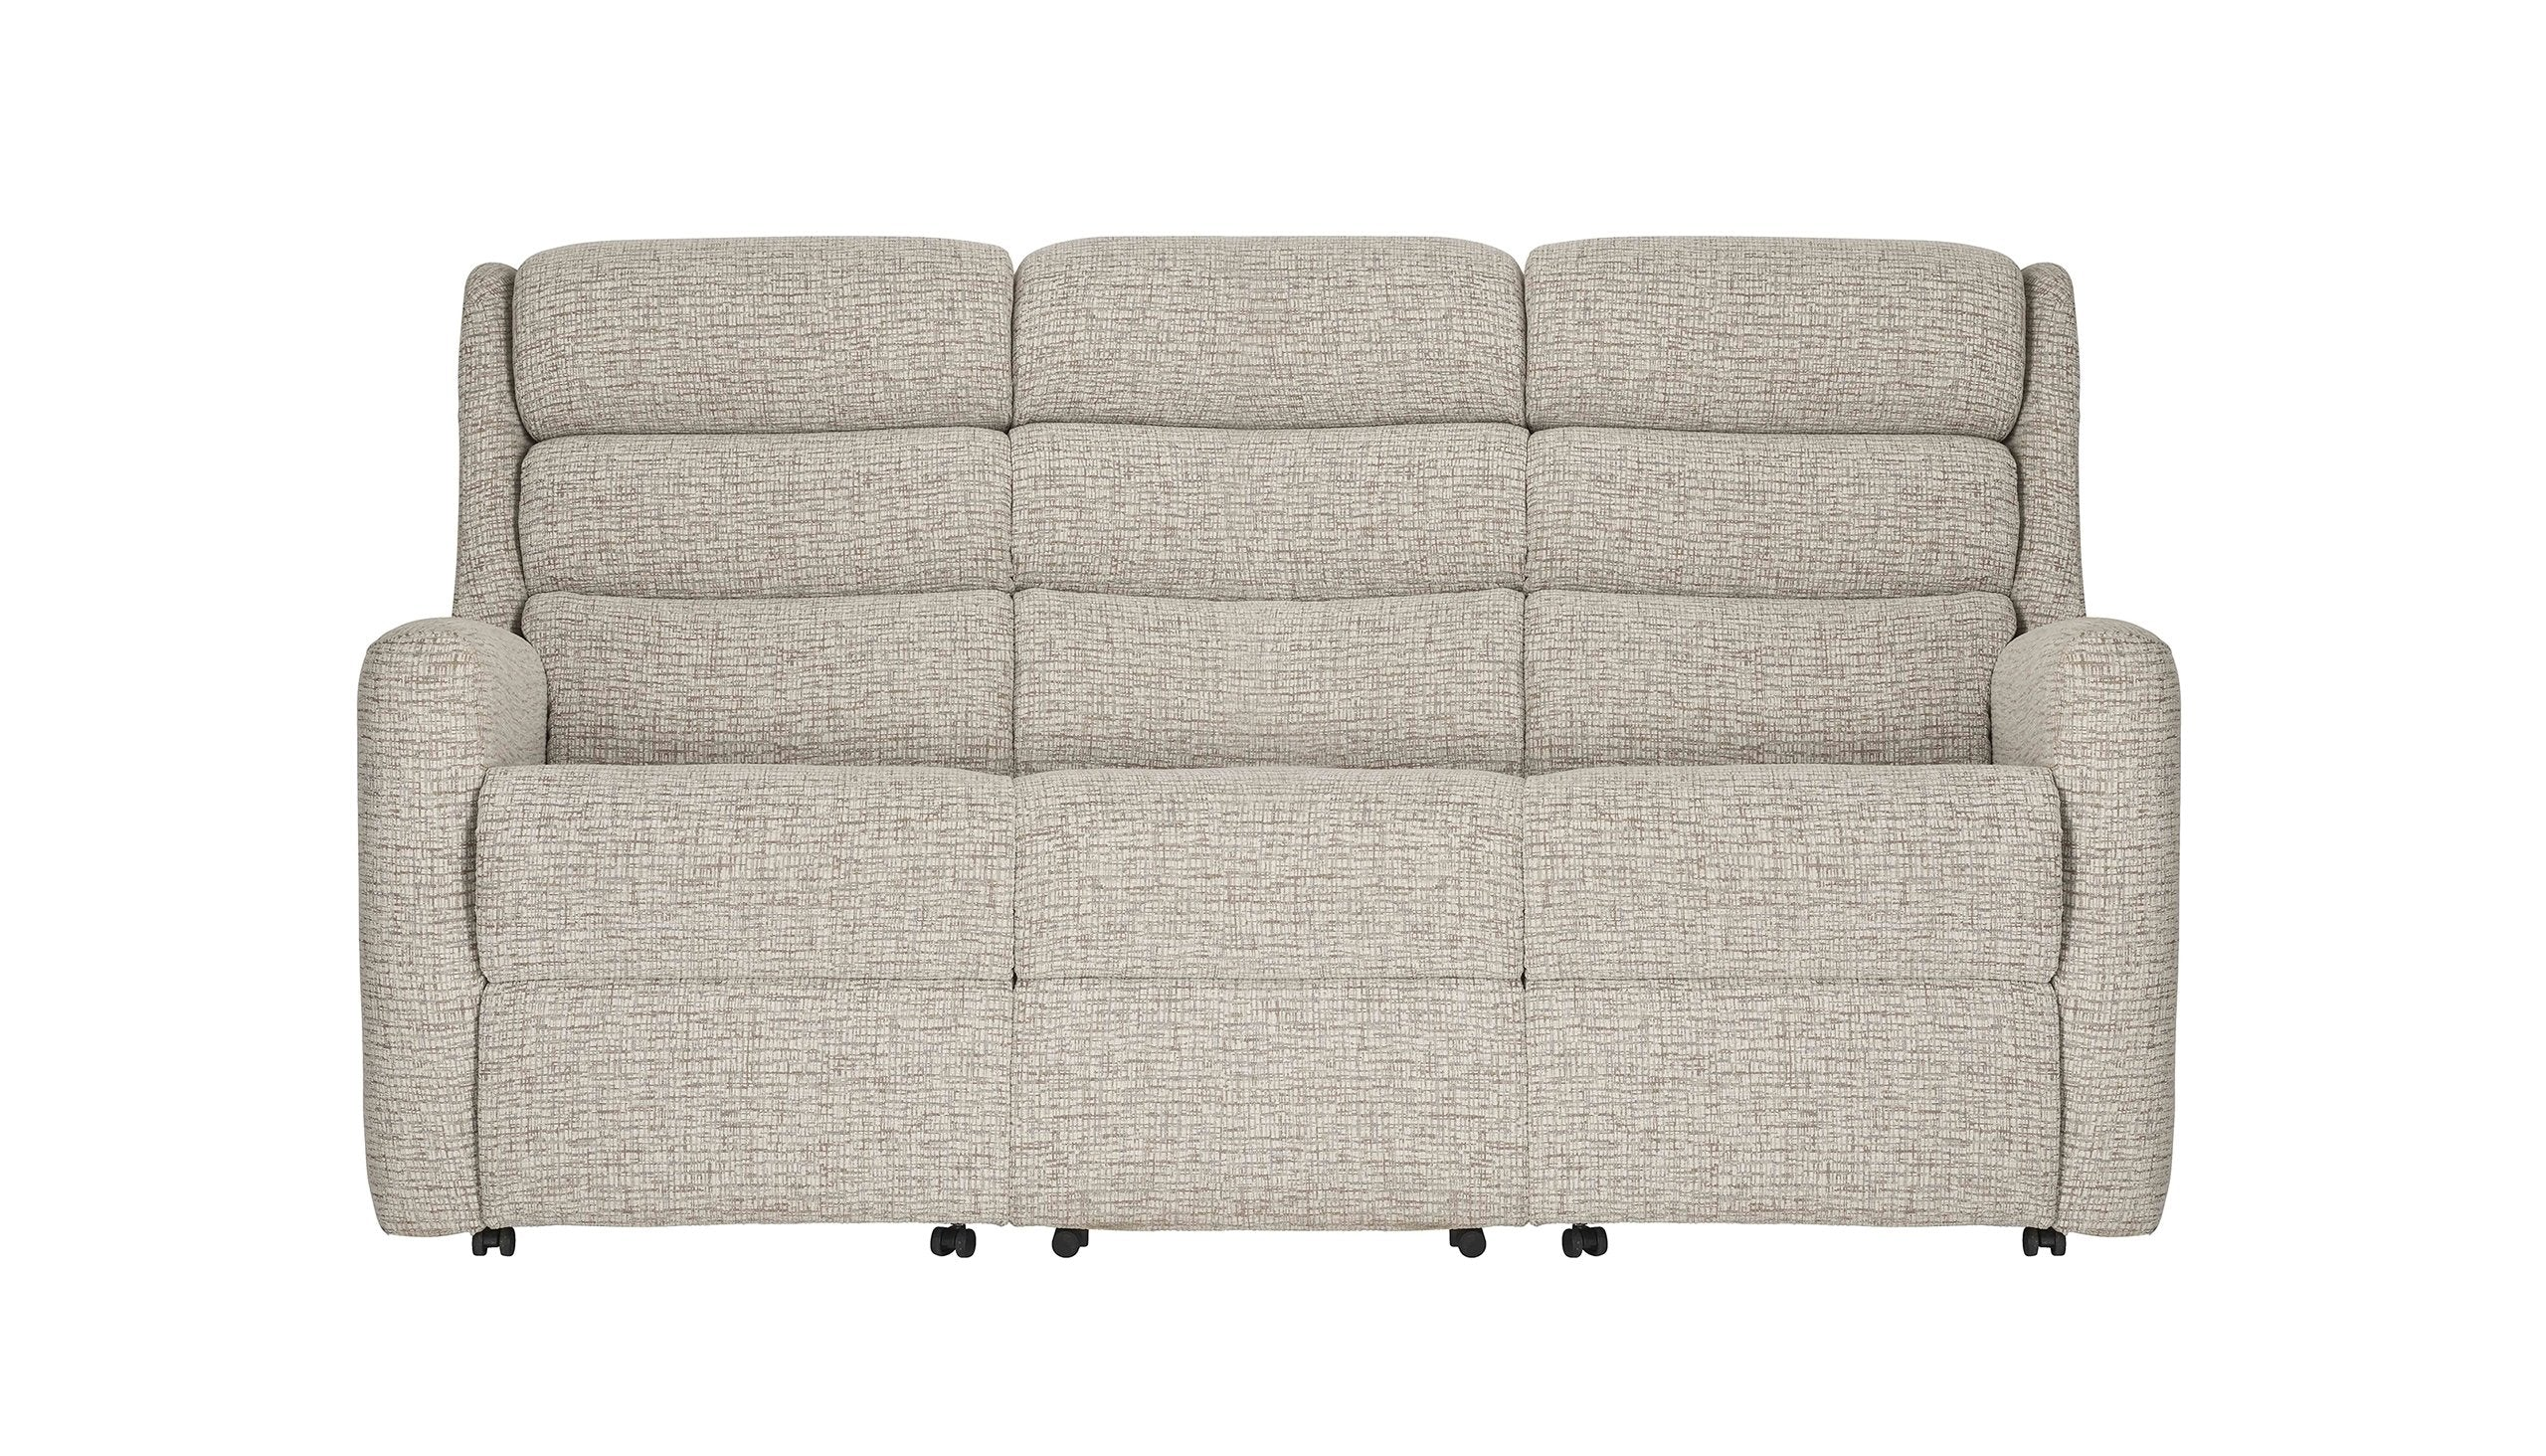 Celebrity Somersby 3 Seater Power Recliner Sofa - AHF Furniture & Carpets